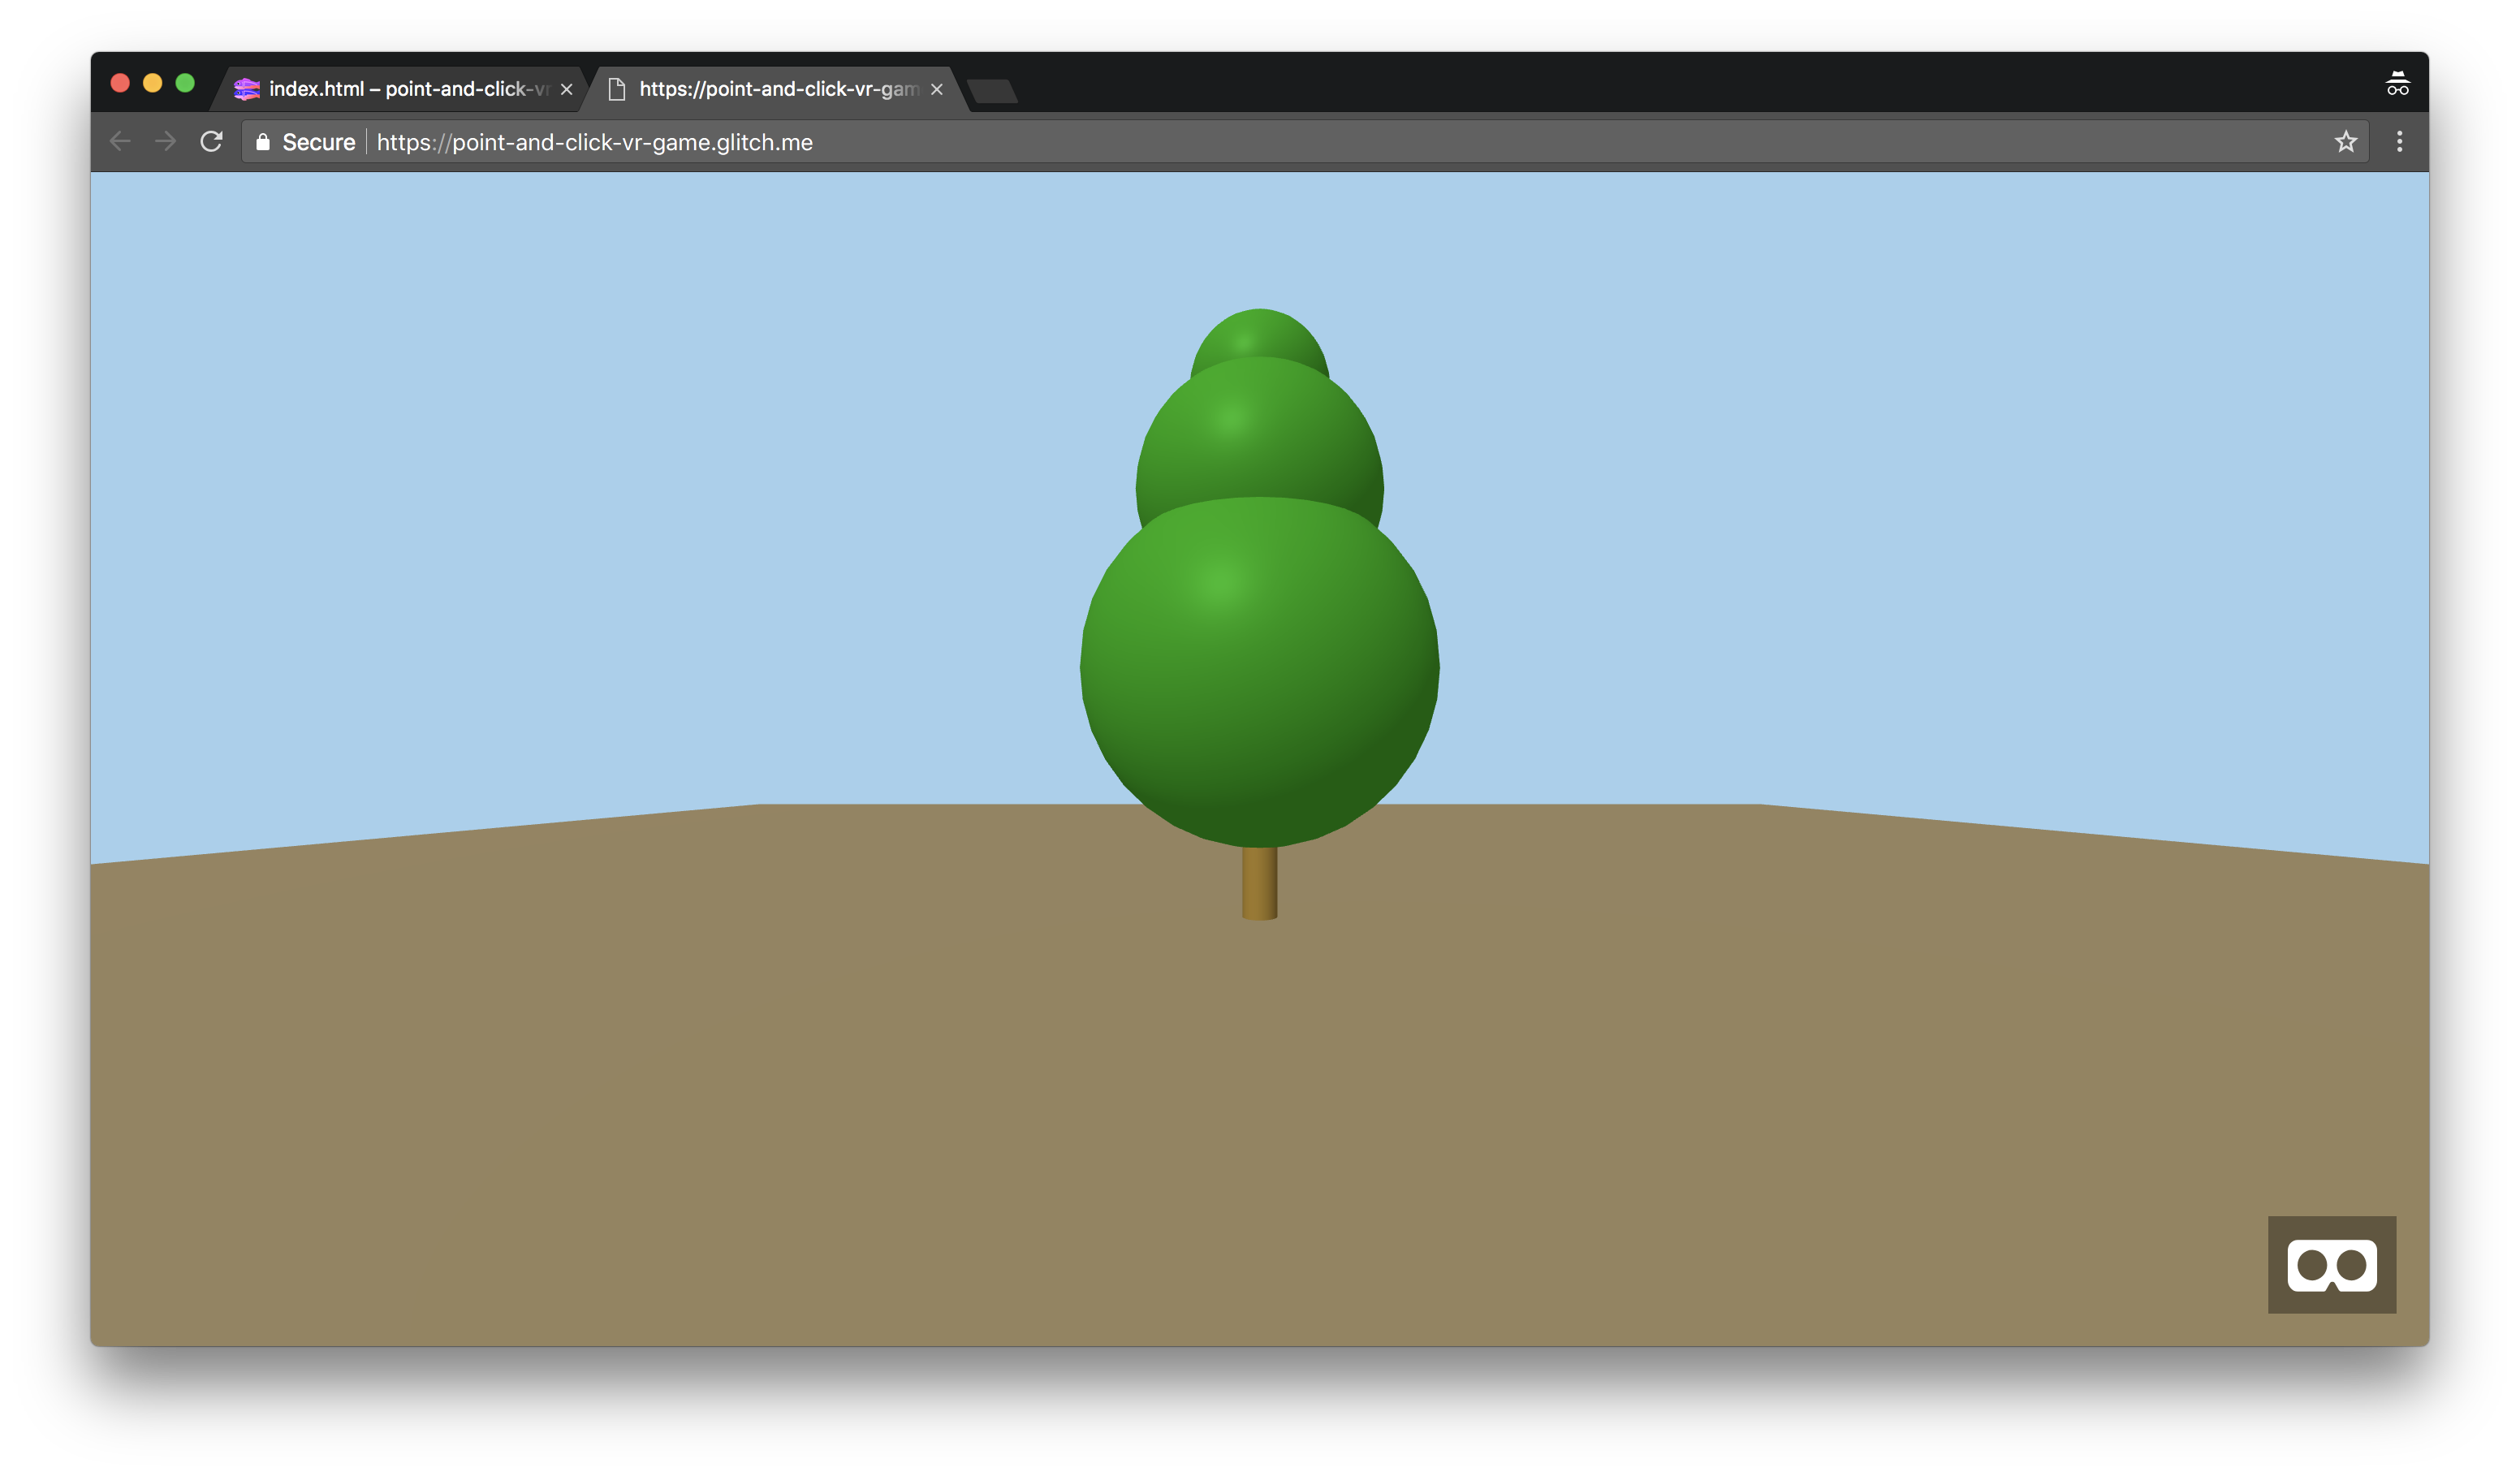 how to build a virtual reality model with a real time cross devicewhen navigating back to your preview, you will now be able to see a green